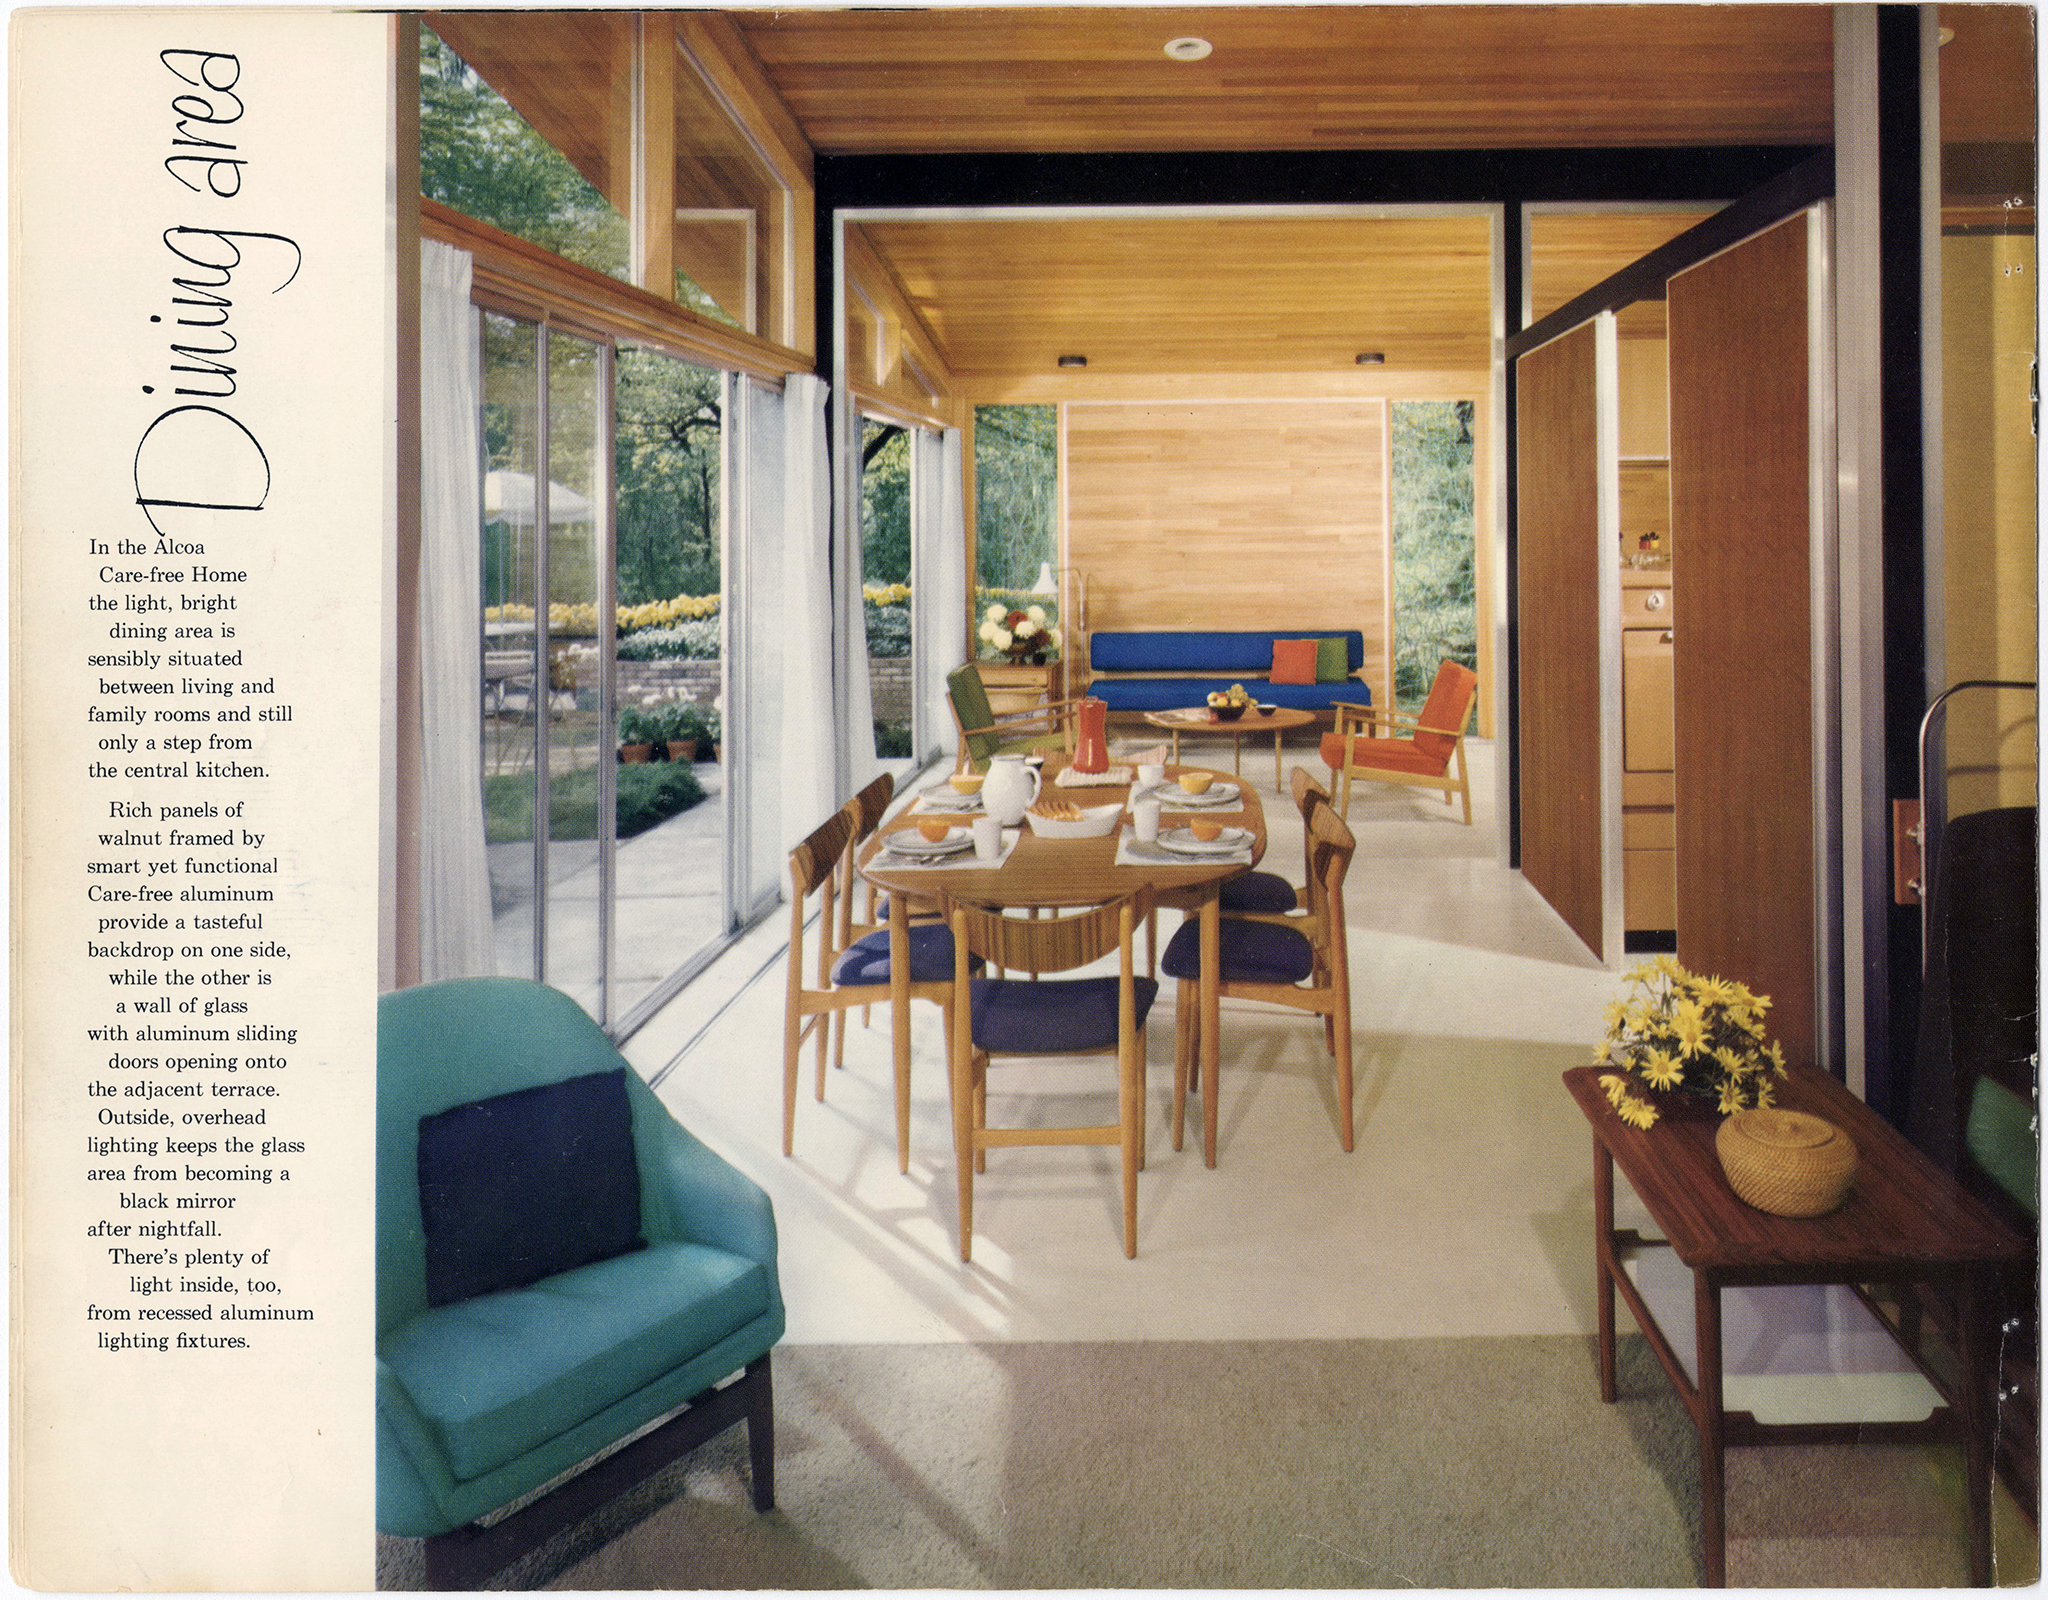 Page 6 - Dining Area